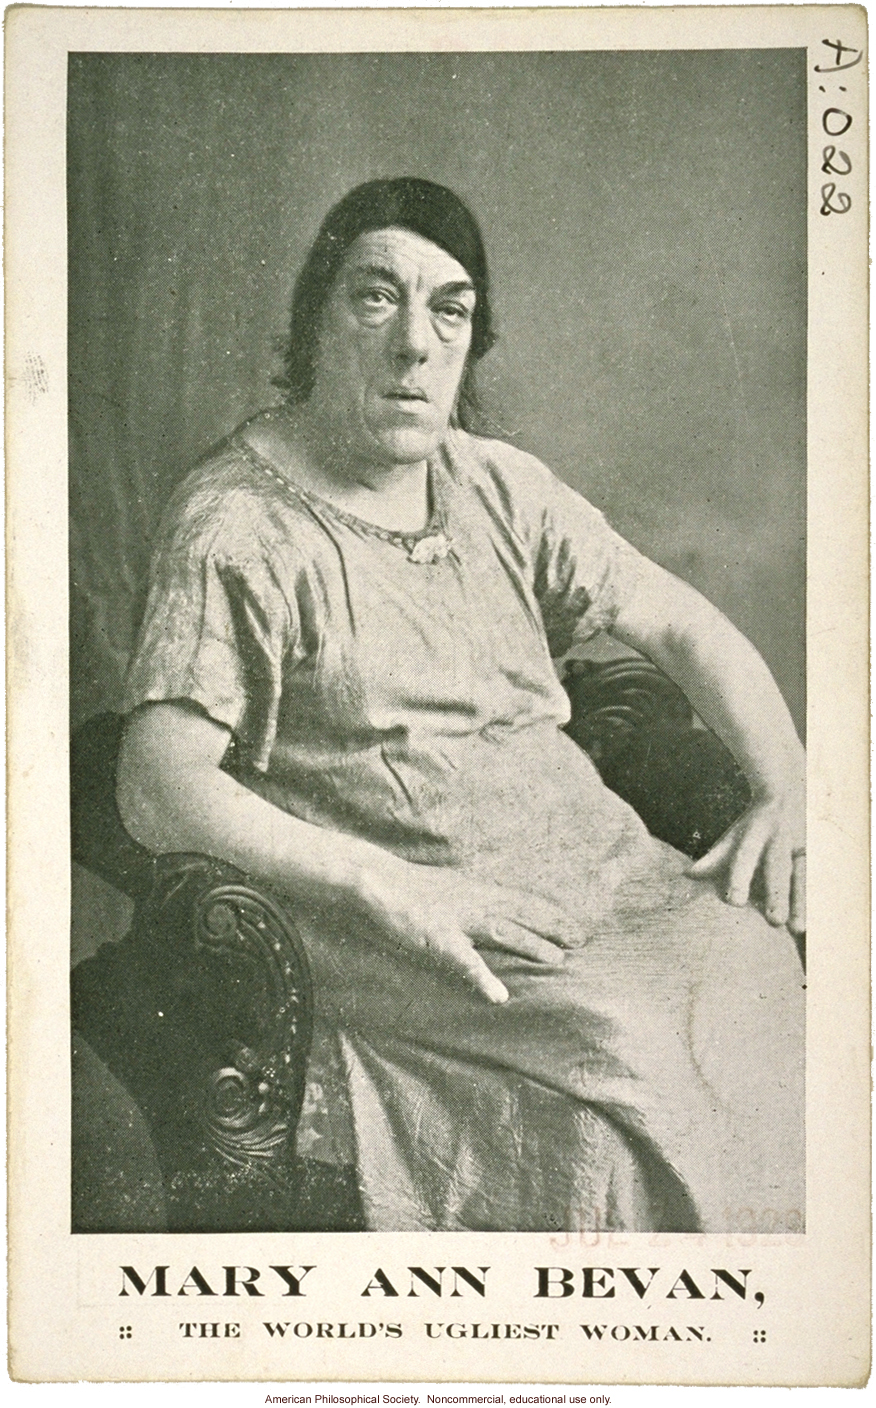 &quote;Mary Ann Bevan, the world's ugliest woman,&quote; acromegaly